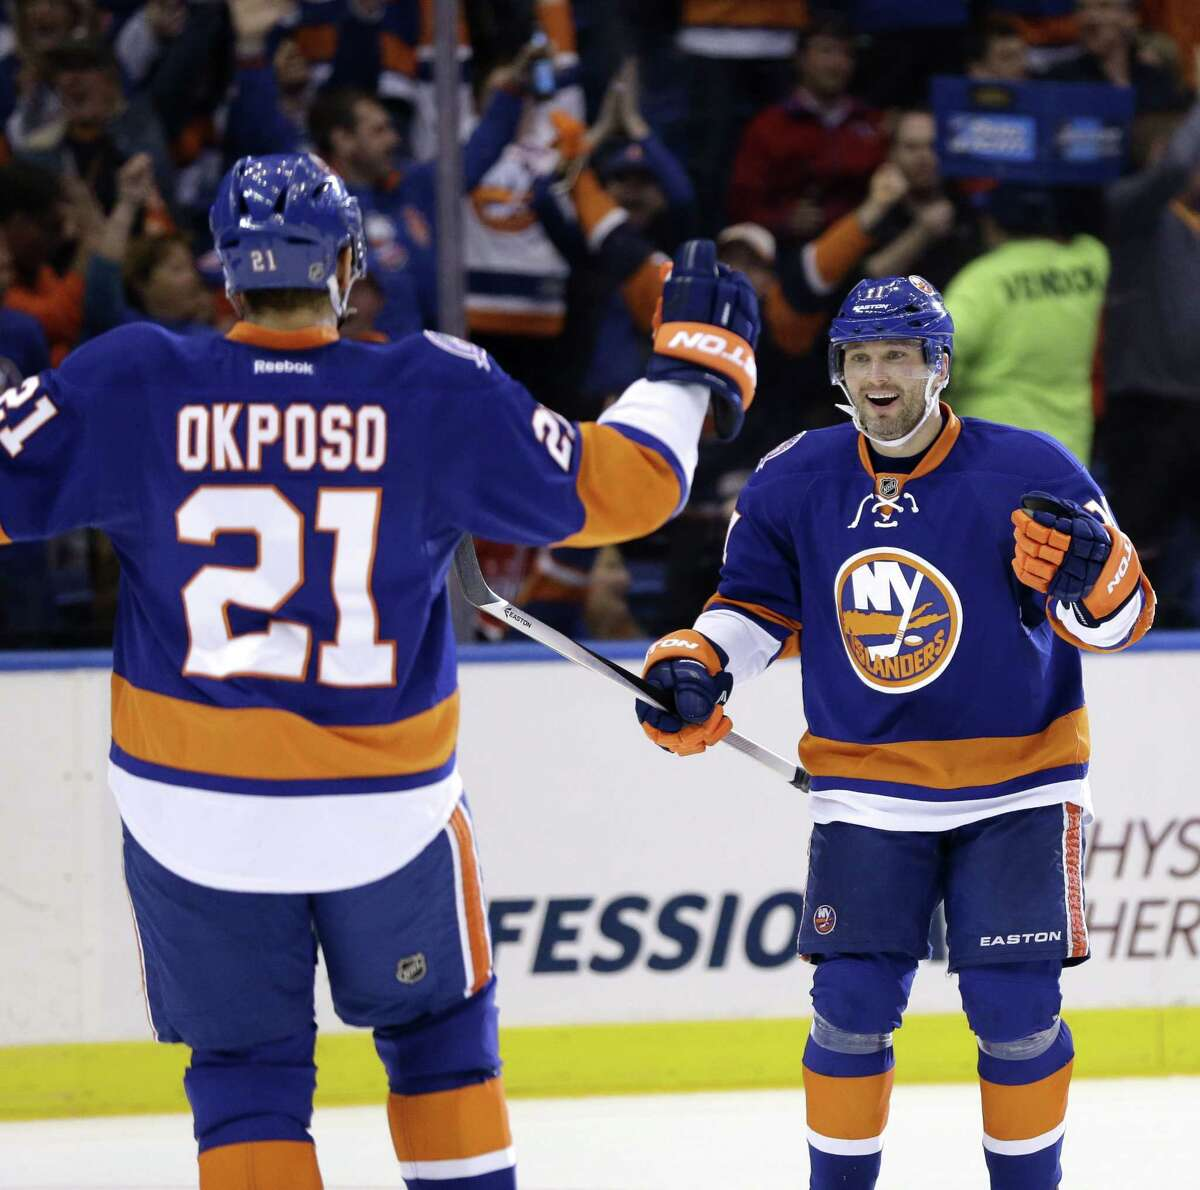 The New York Islanders' Lubomir Visnovsky celebrates with Kyle Okposo after Okposo scored during Game 3 Sunday against the Washington Capitals in Uniondale, New York.